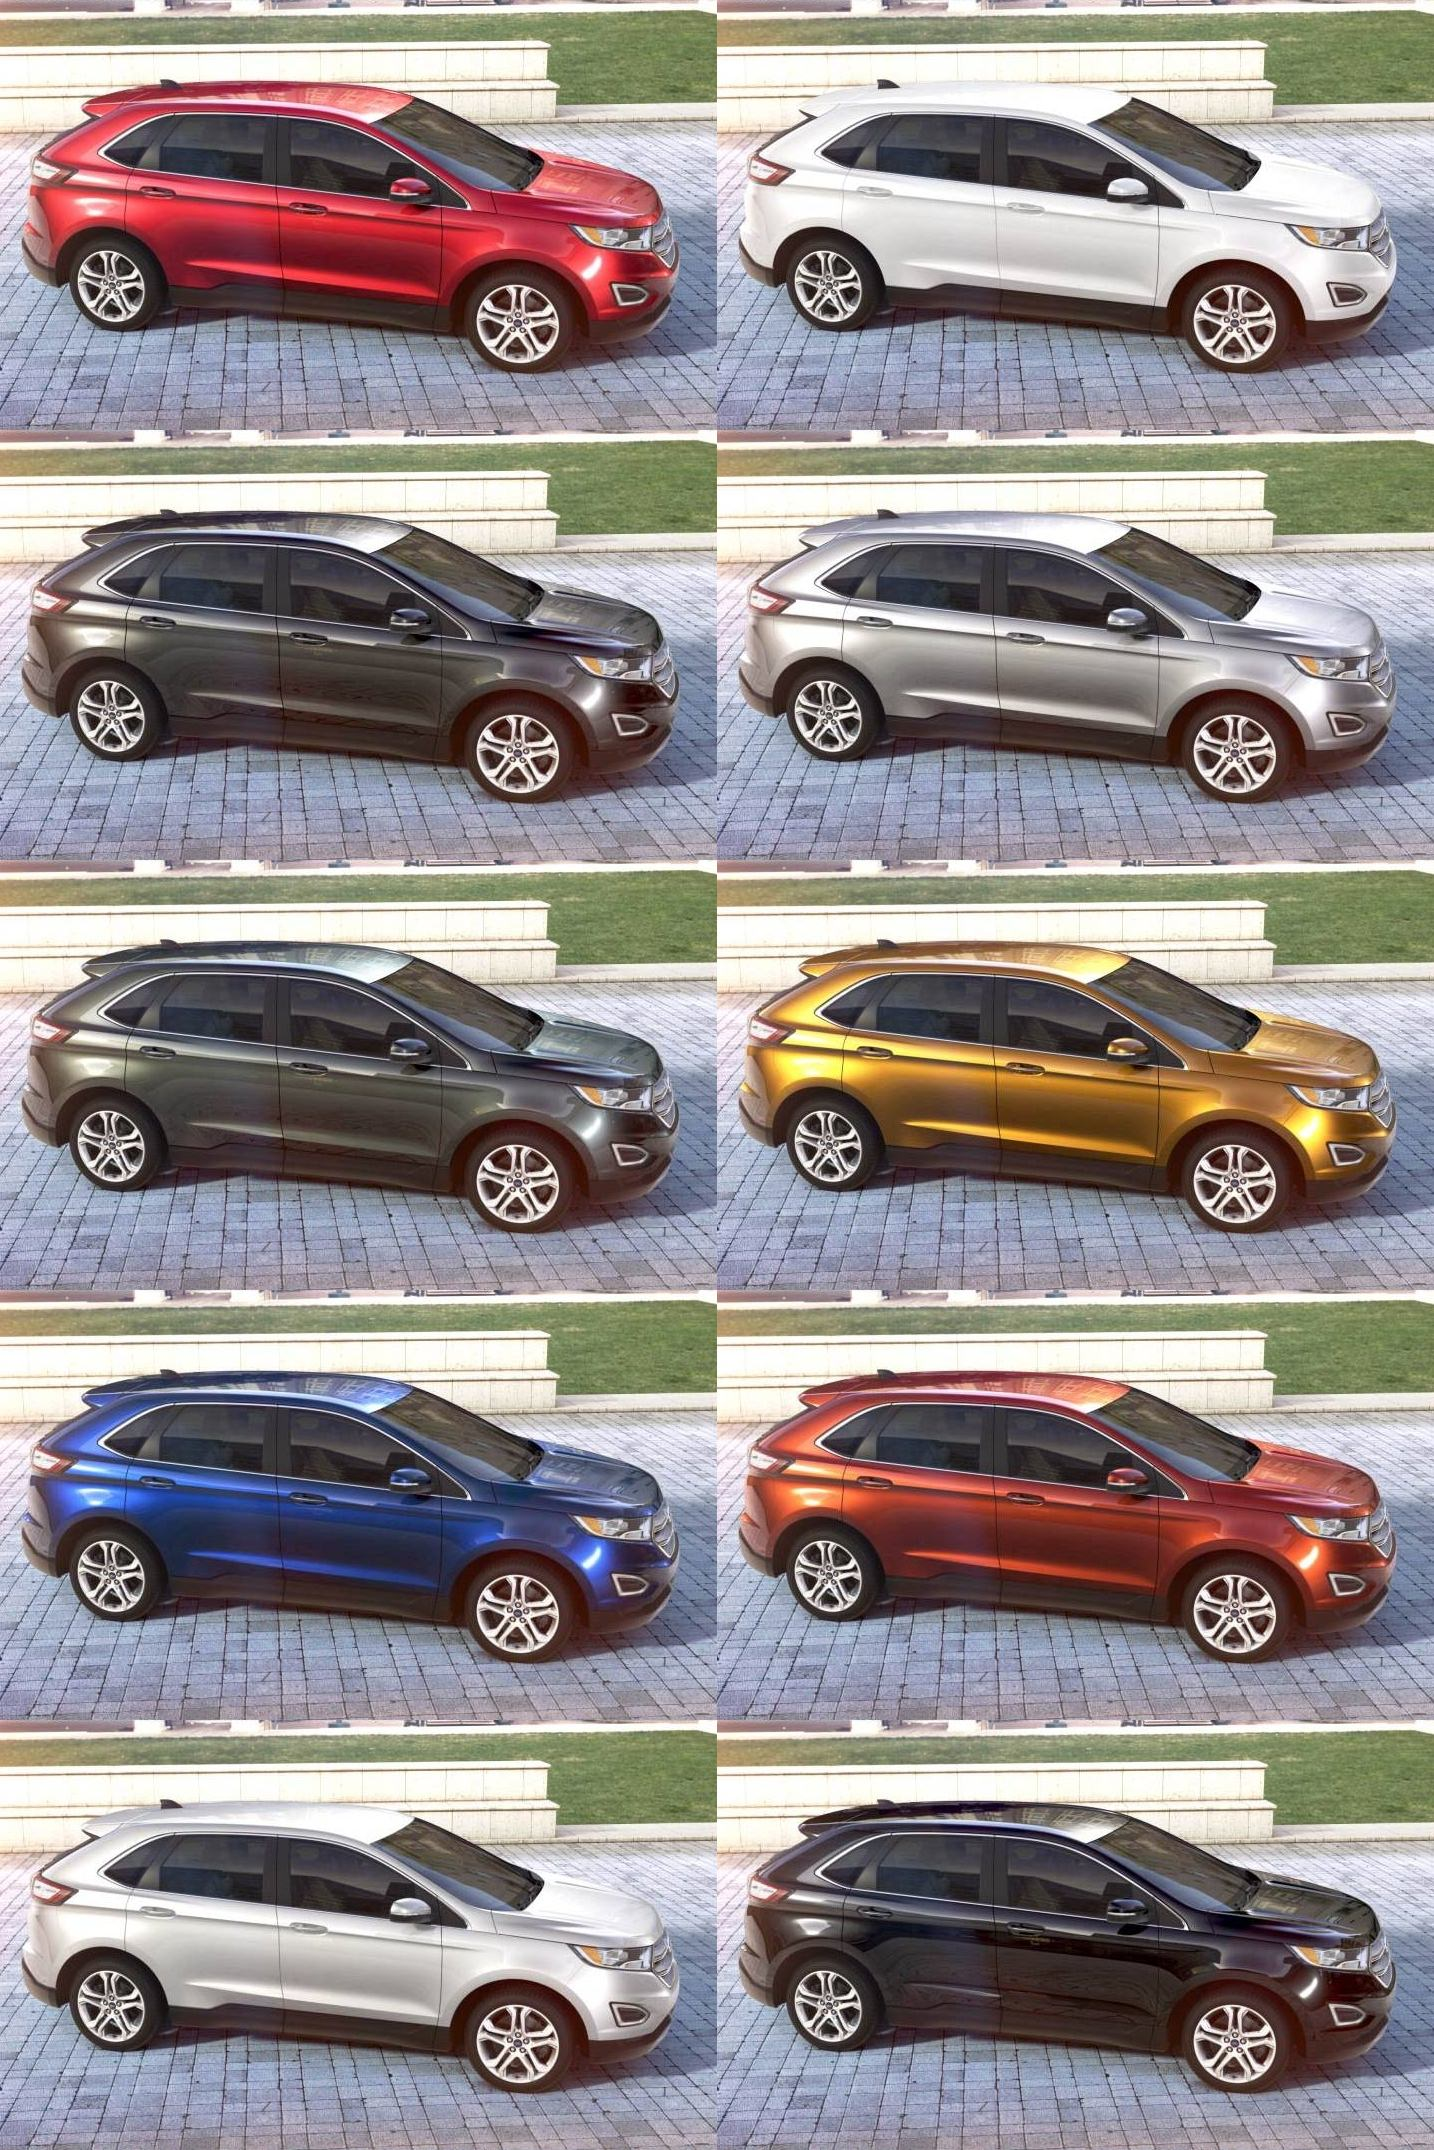 2015 Ford Edge Visualizer All 10 Colors From Every Angle Animated Turntables